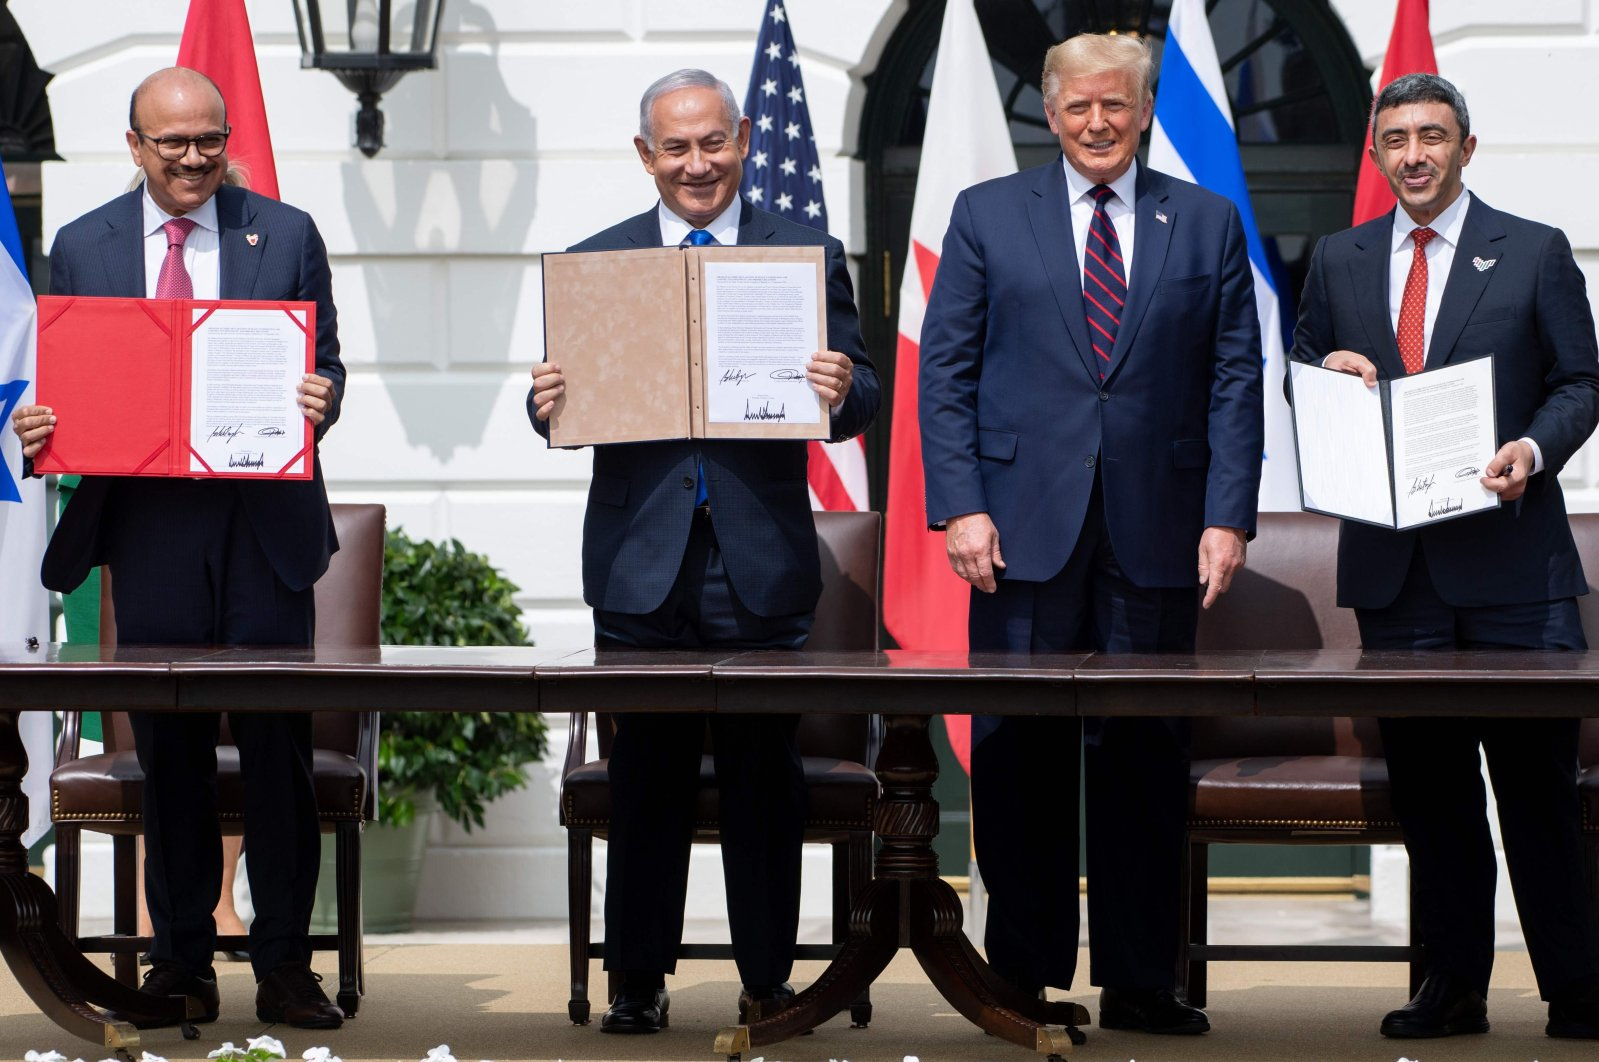 (L-R) Bahrain Foreign Minister Abdullatif al-Zayani, Israeli Prime Minister Benjamin Netanyahu, U.S. President Donald Trump, and UAE Foreign Minister Abdullah bin Zayed Al-Nahyan hold up documents after participating in the signing of the Abraham Accords where the countries of Bahrain and the United Arab Emirates recognize Israel, at the White House in Washington, DC, Sept.15, 2020. (AFP Photo)